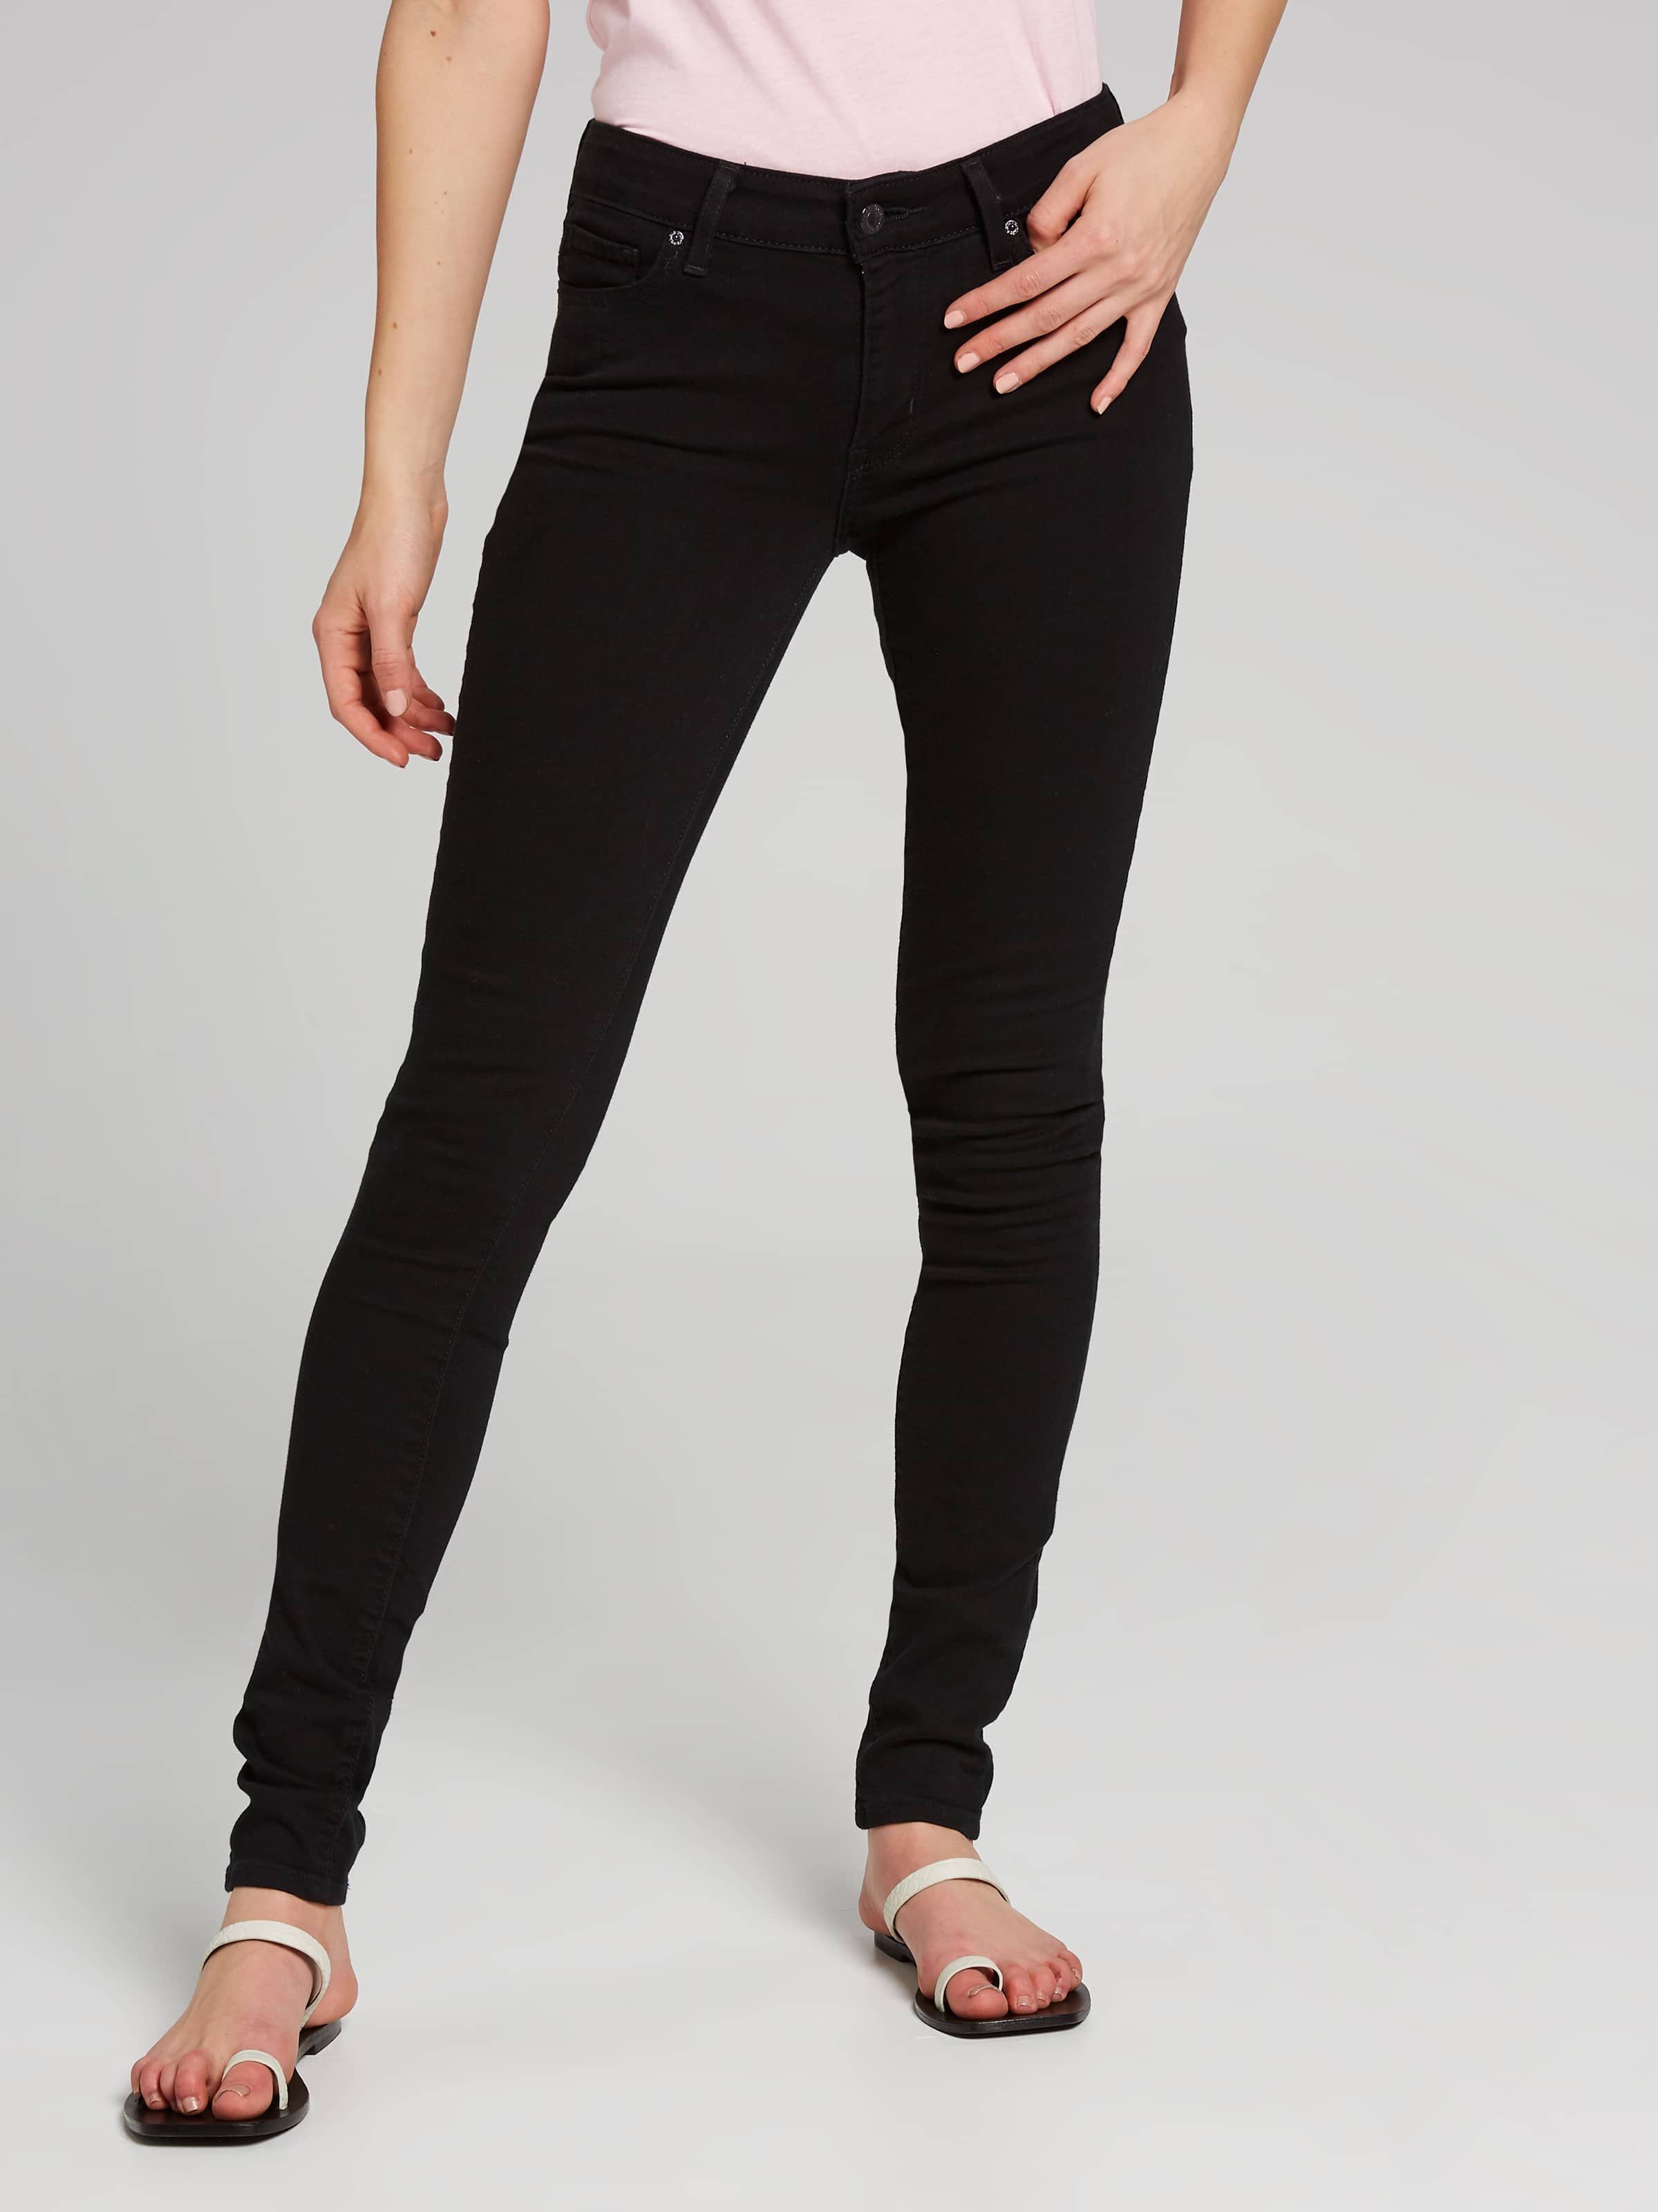 0bbea5fb53507 Image for Levi s 711 Skinny Jean In Black Sheep from Just Jeans ...